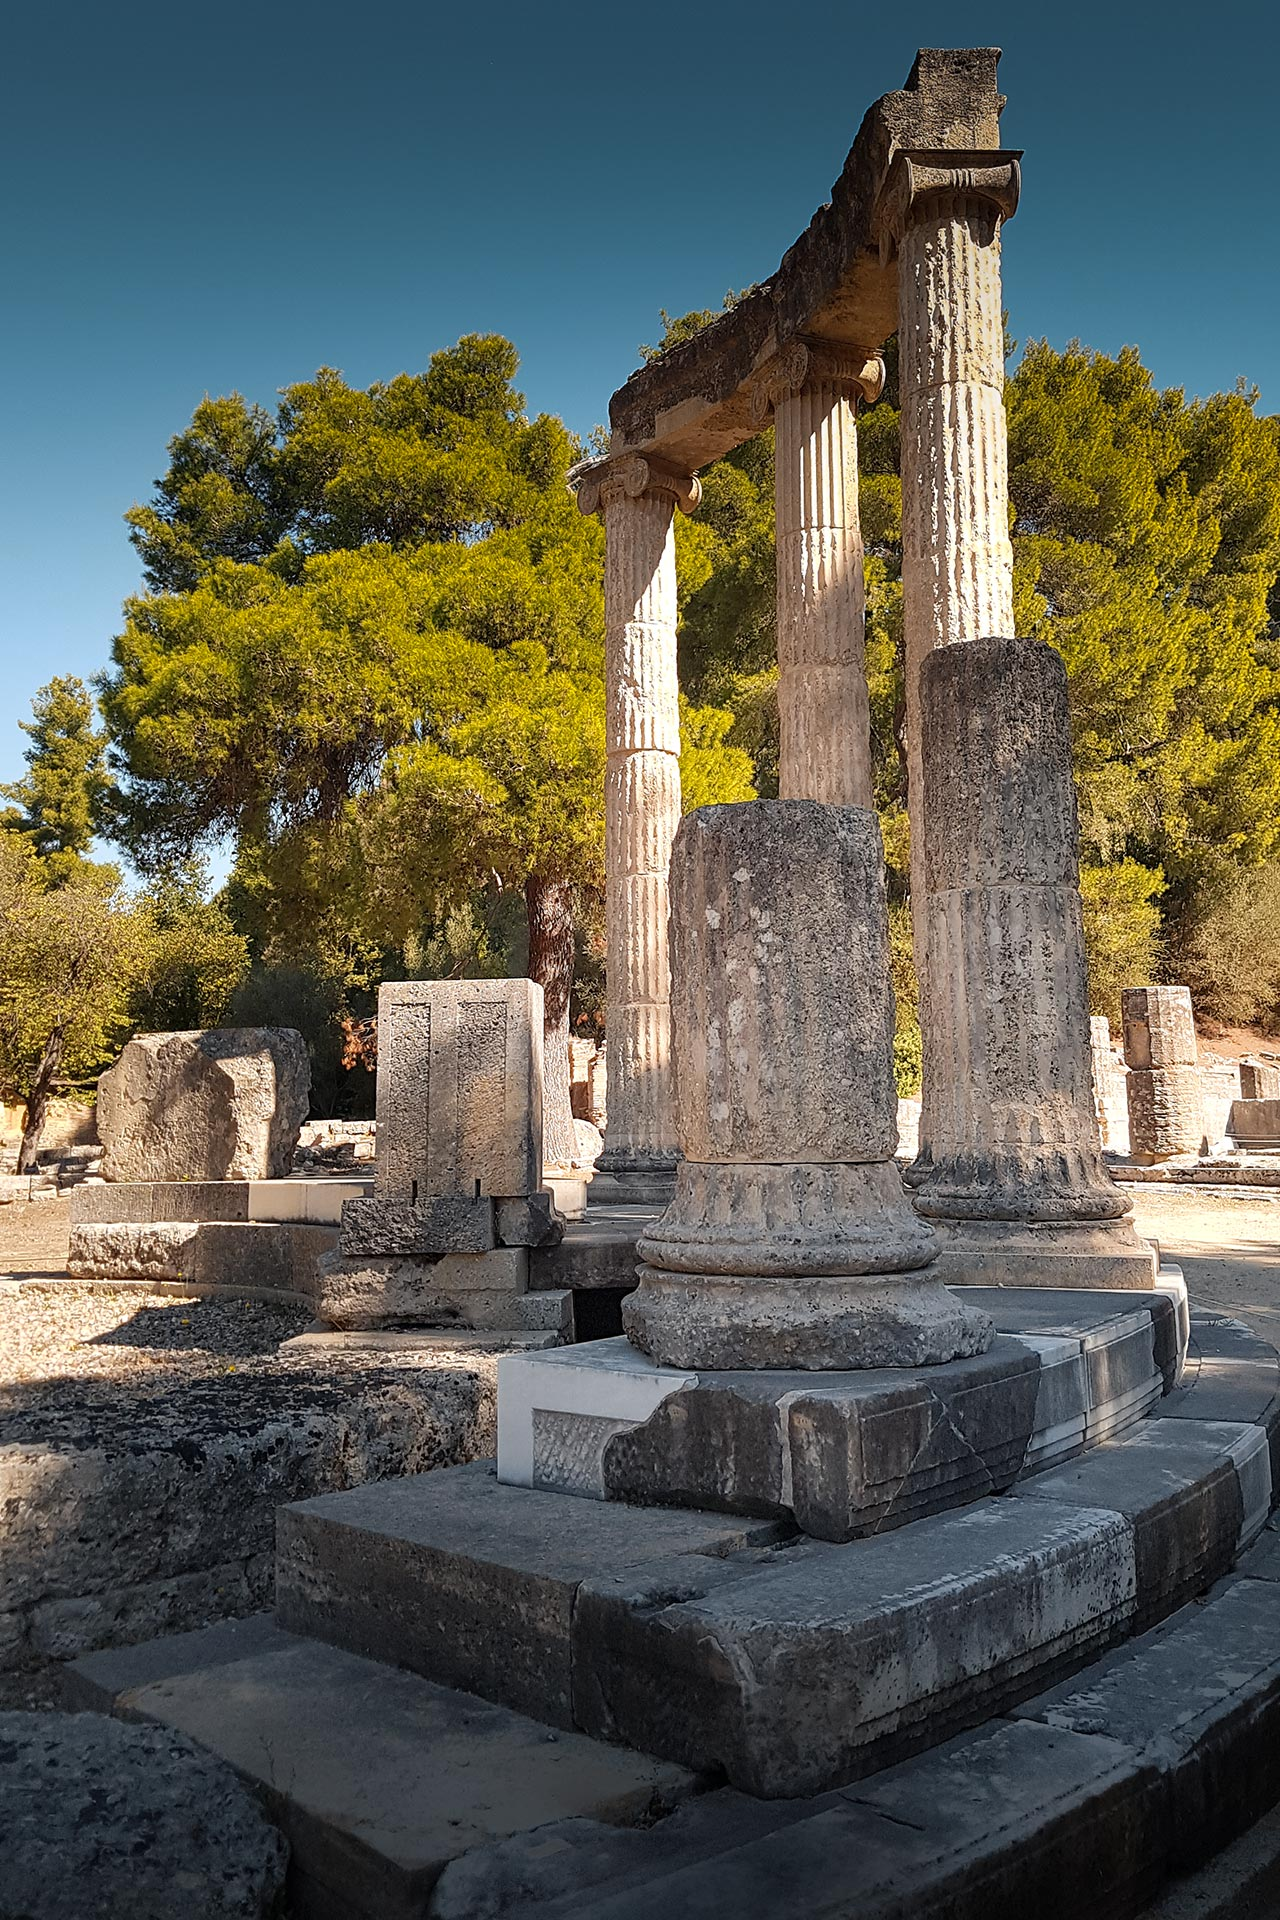 The Philippeion of Ancient Olympia